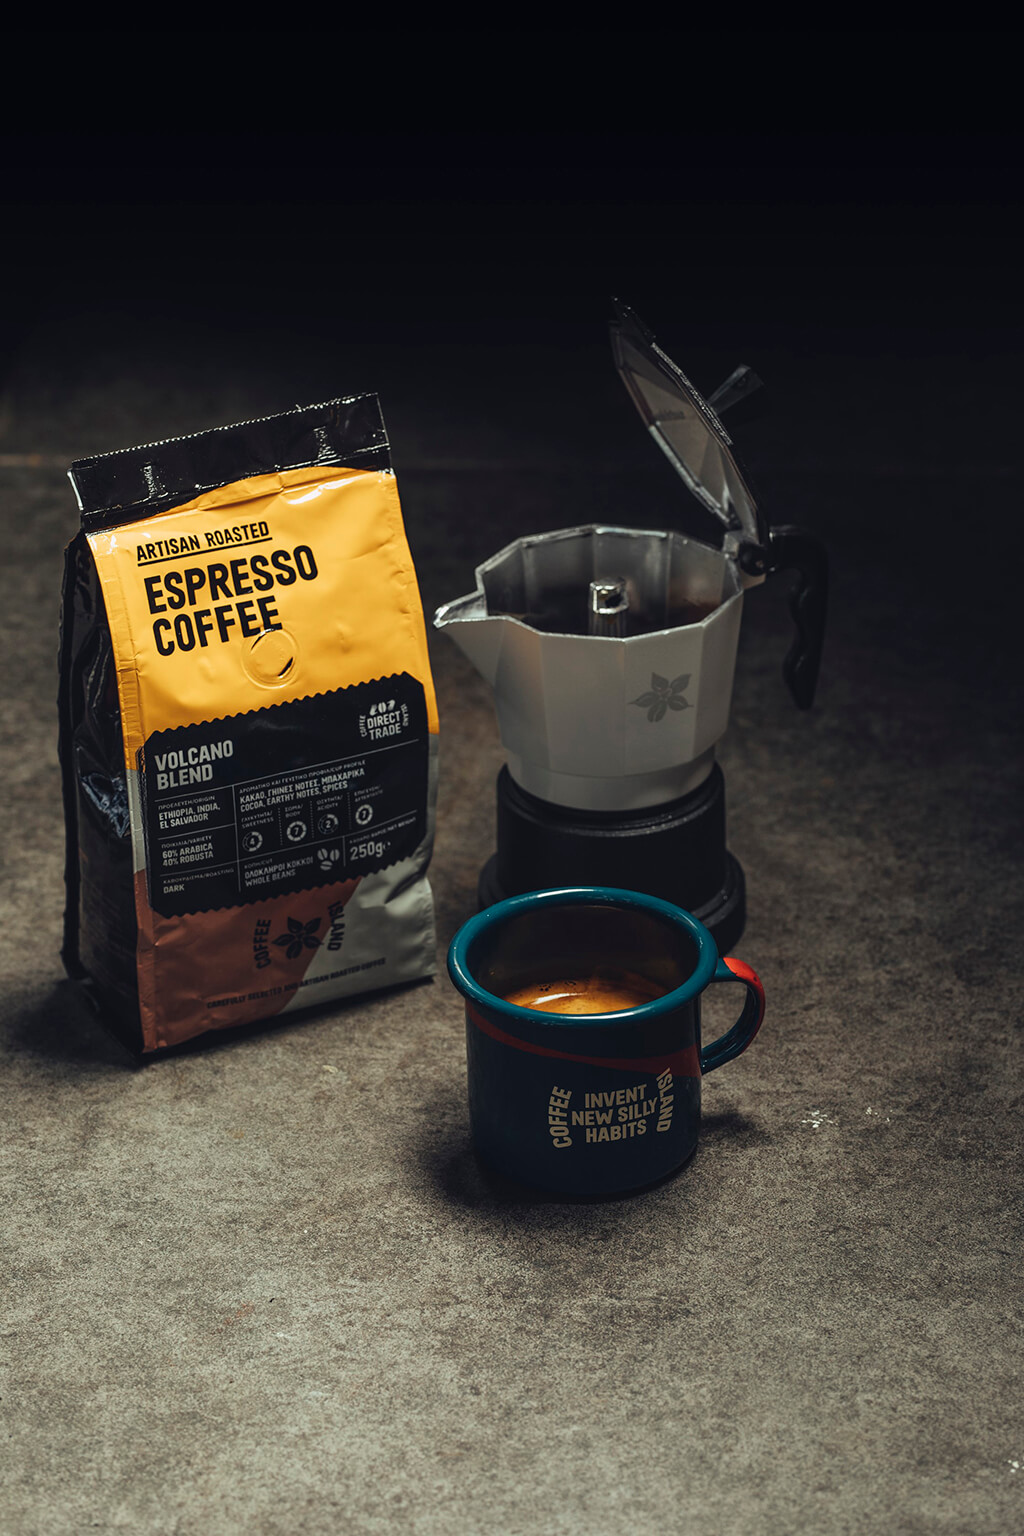 Coffee Island's espresso coffee package, espresso moka machine and mug